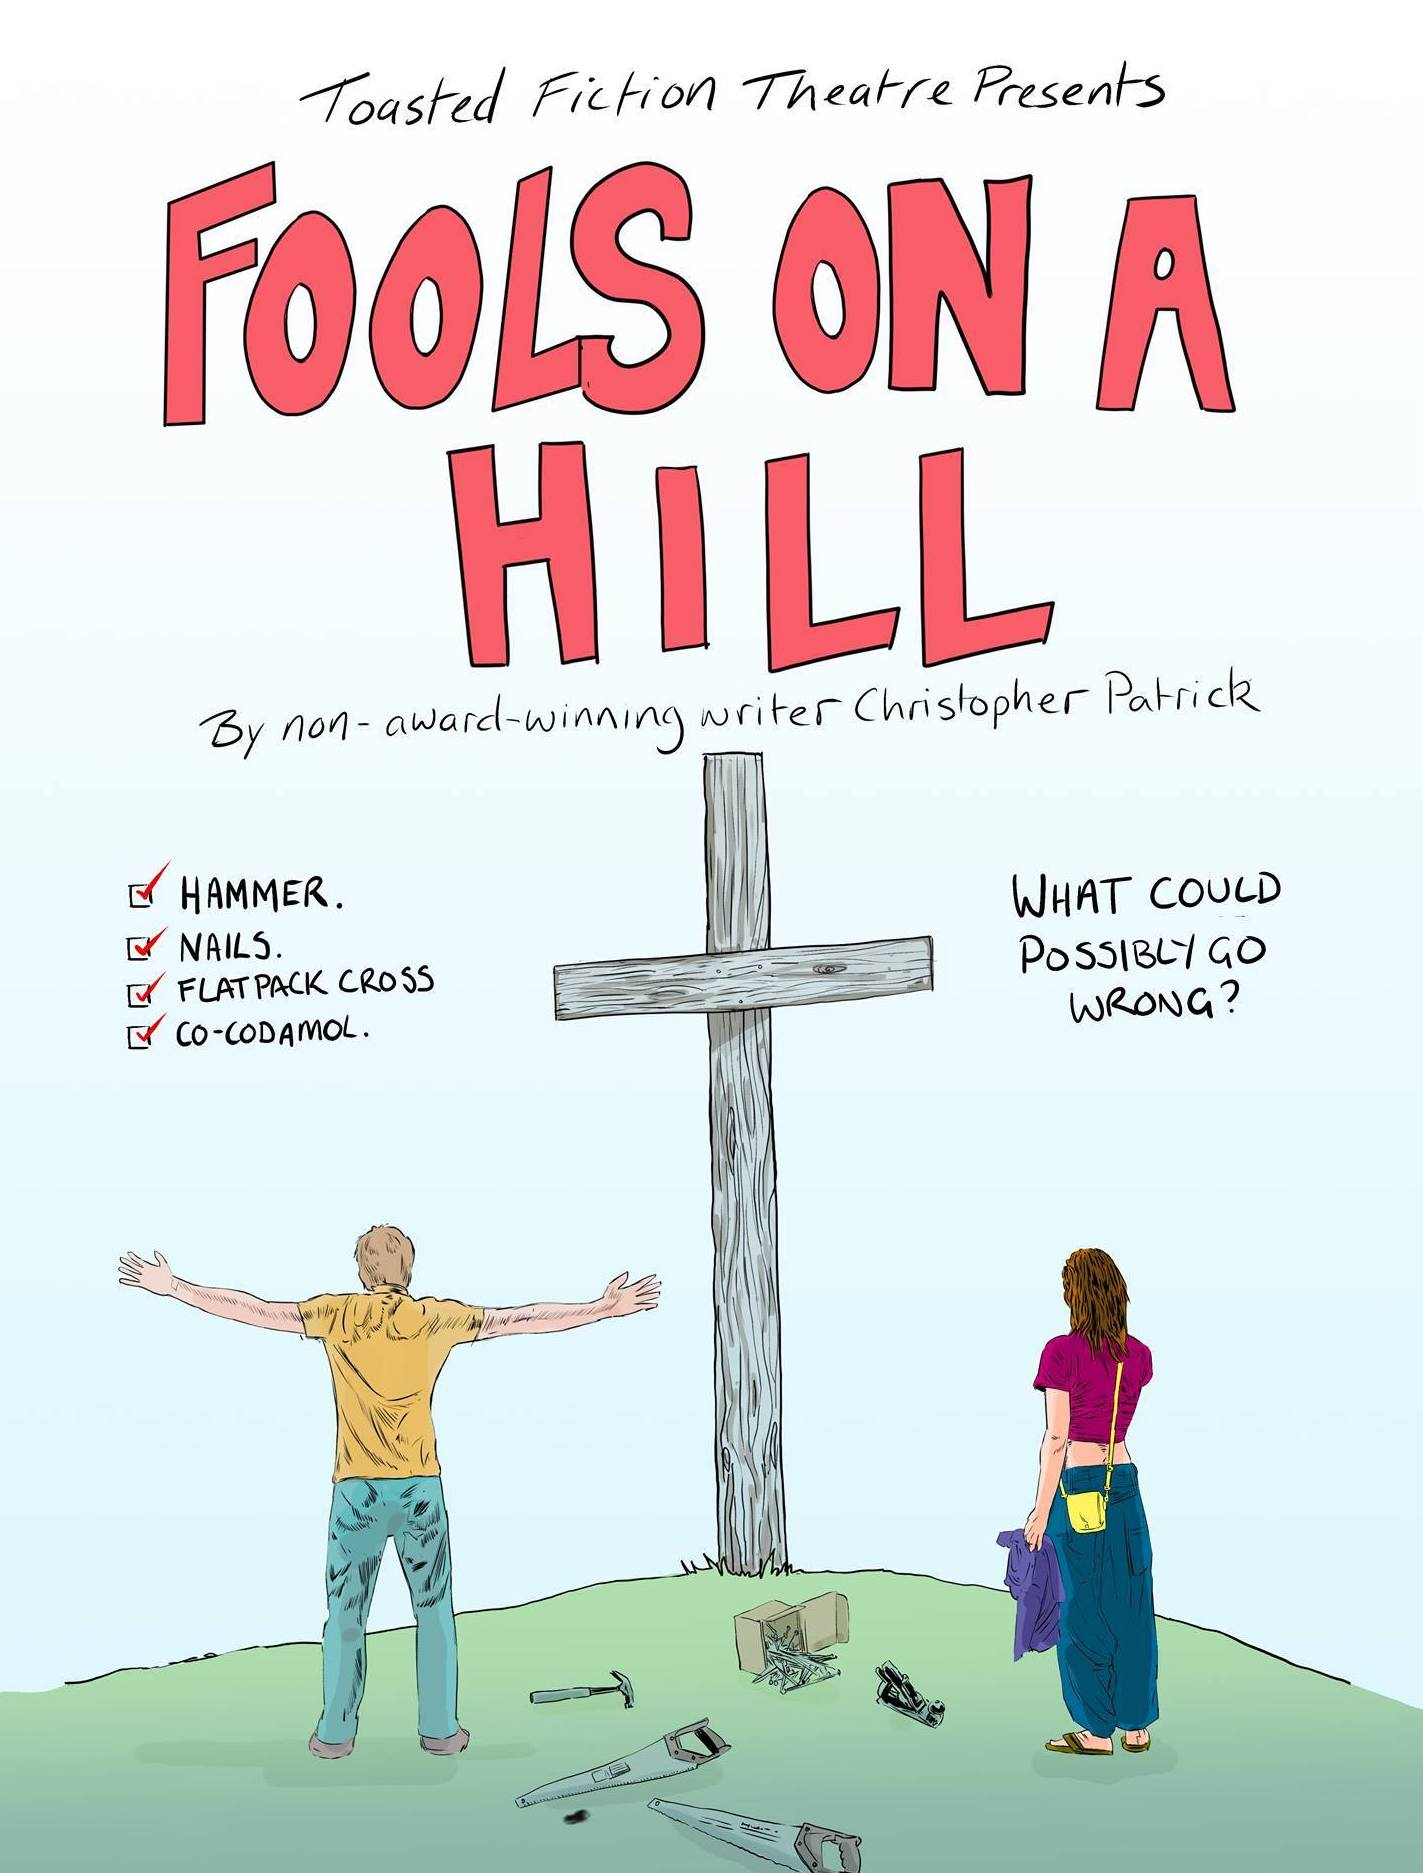 Fools On A Hill Image.jpg